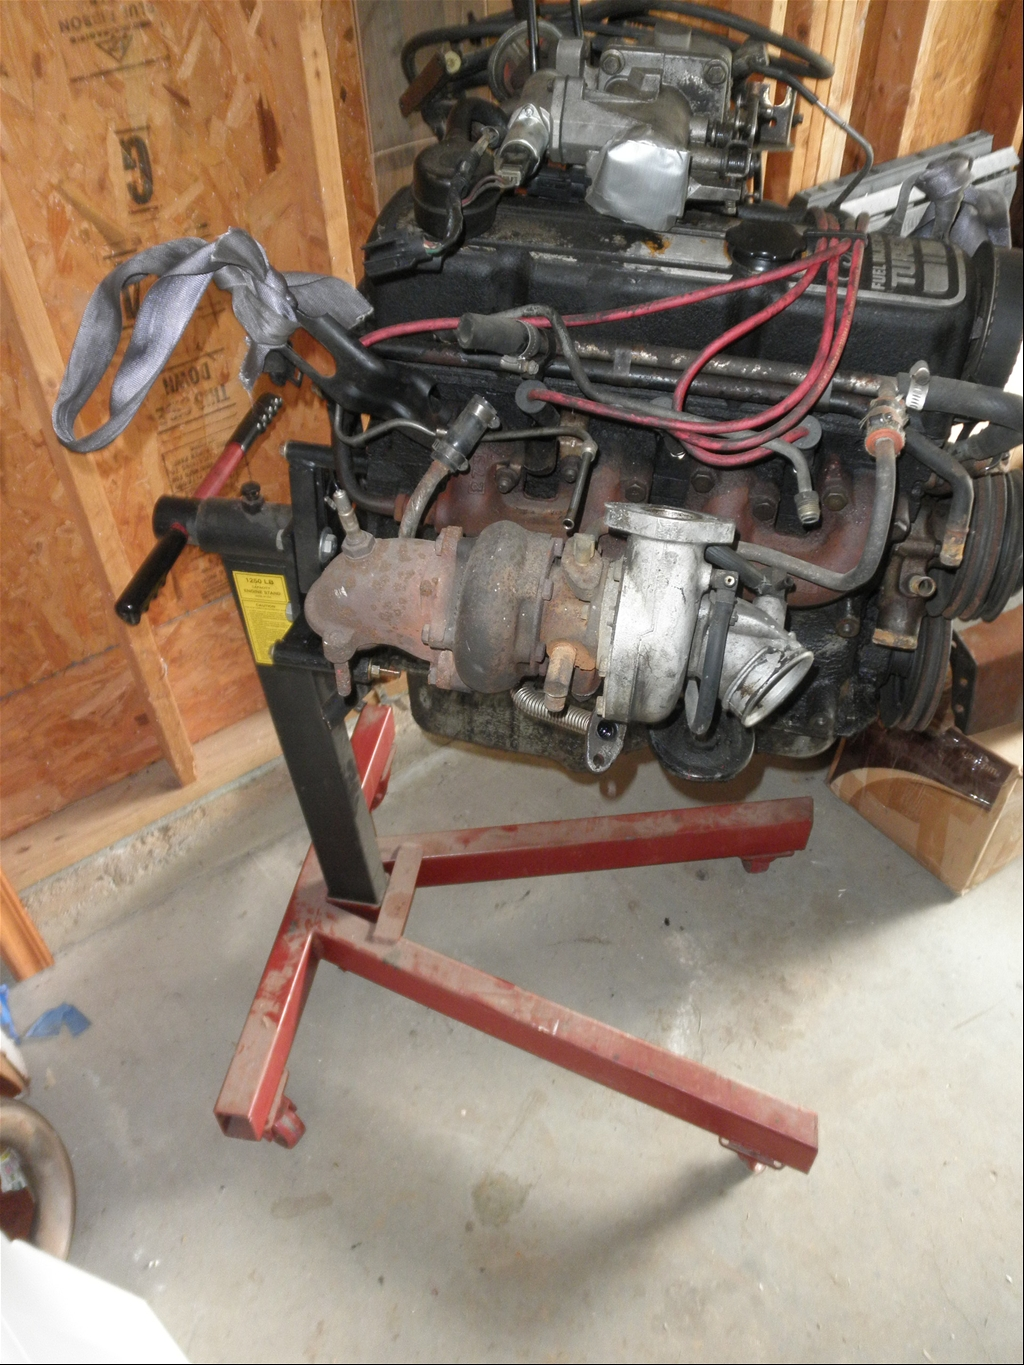 for sale 86 turbo coupe engine and engine stand for sale ford mustang forums. Black Bedroom Furniture Sets. Home Design Ideas